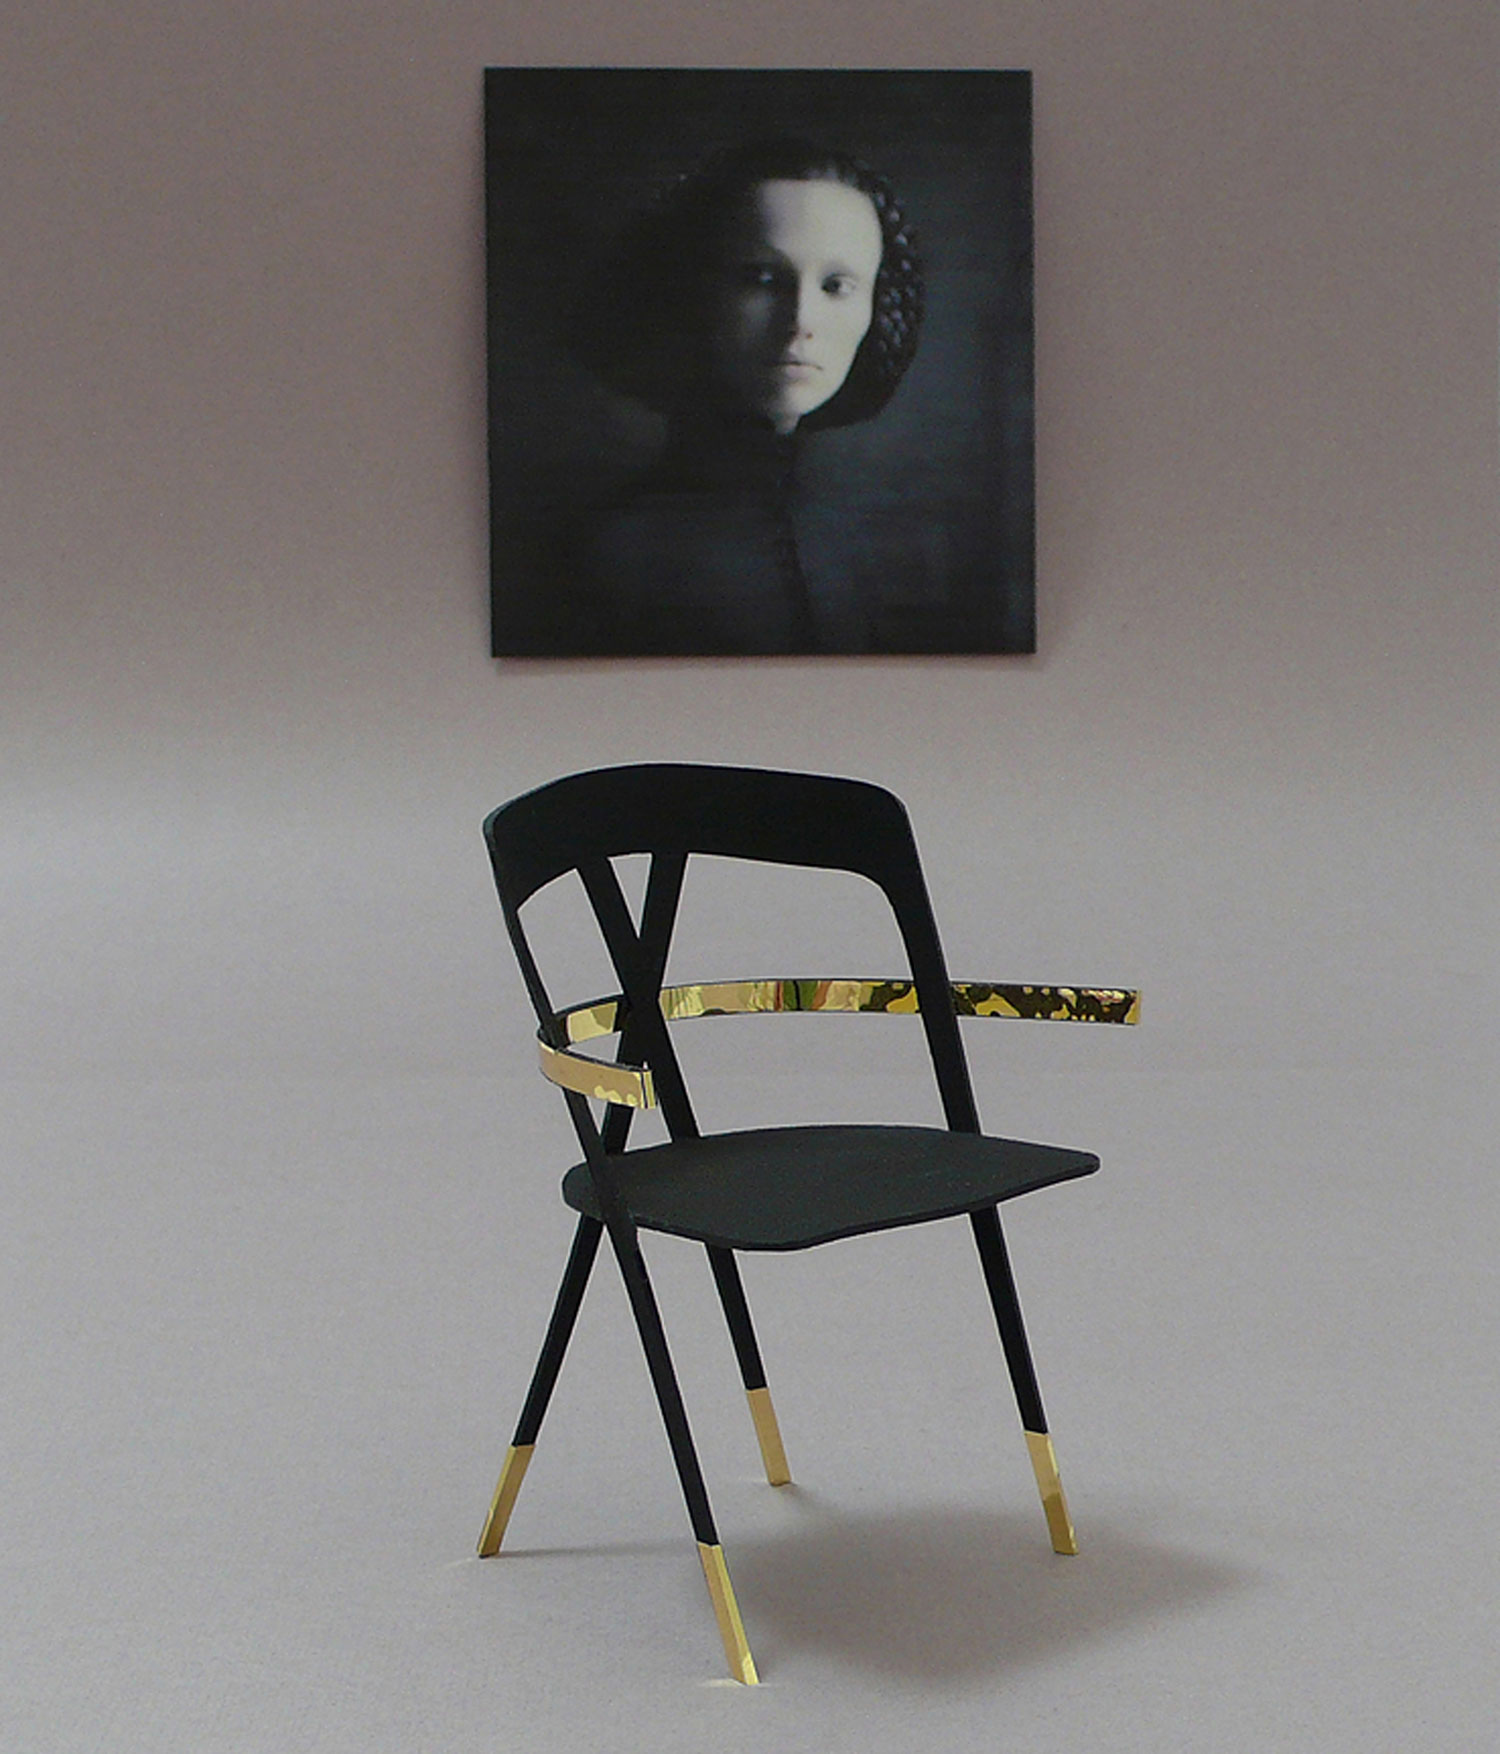 X-Federation Chair by Victor Vetterlein.